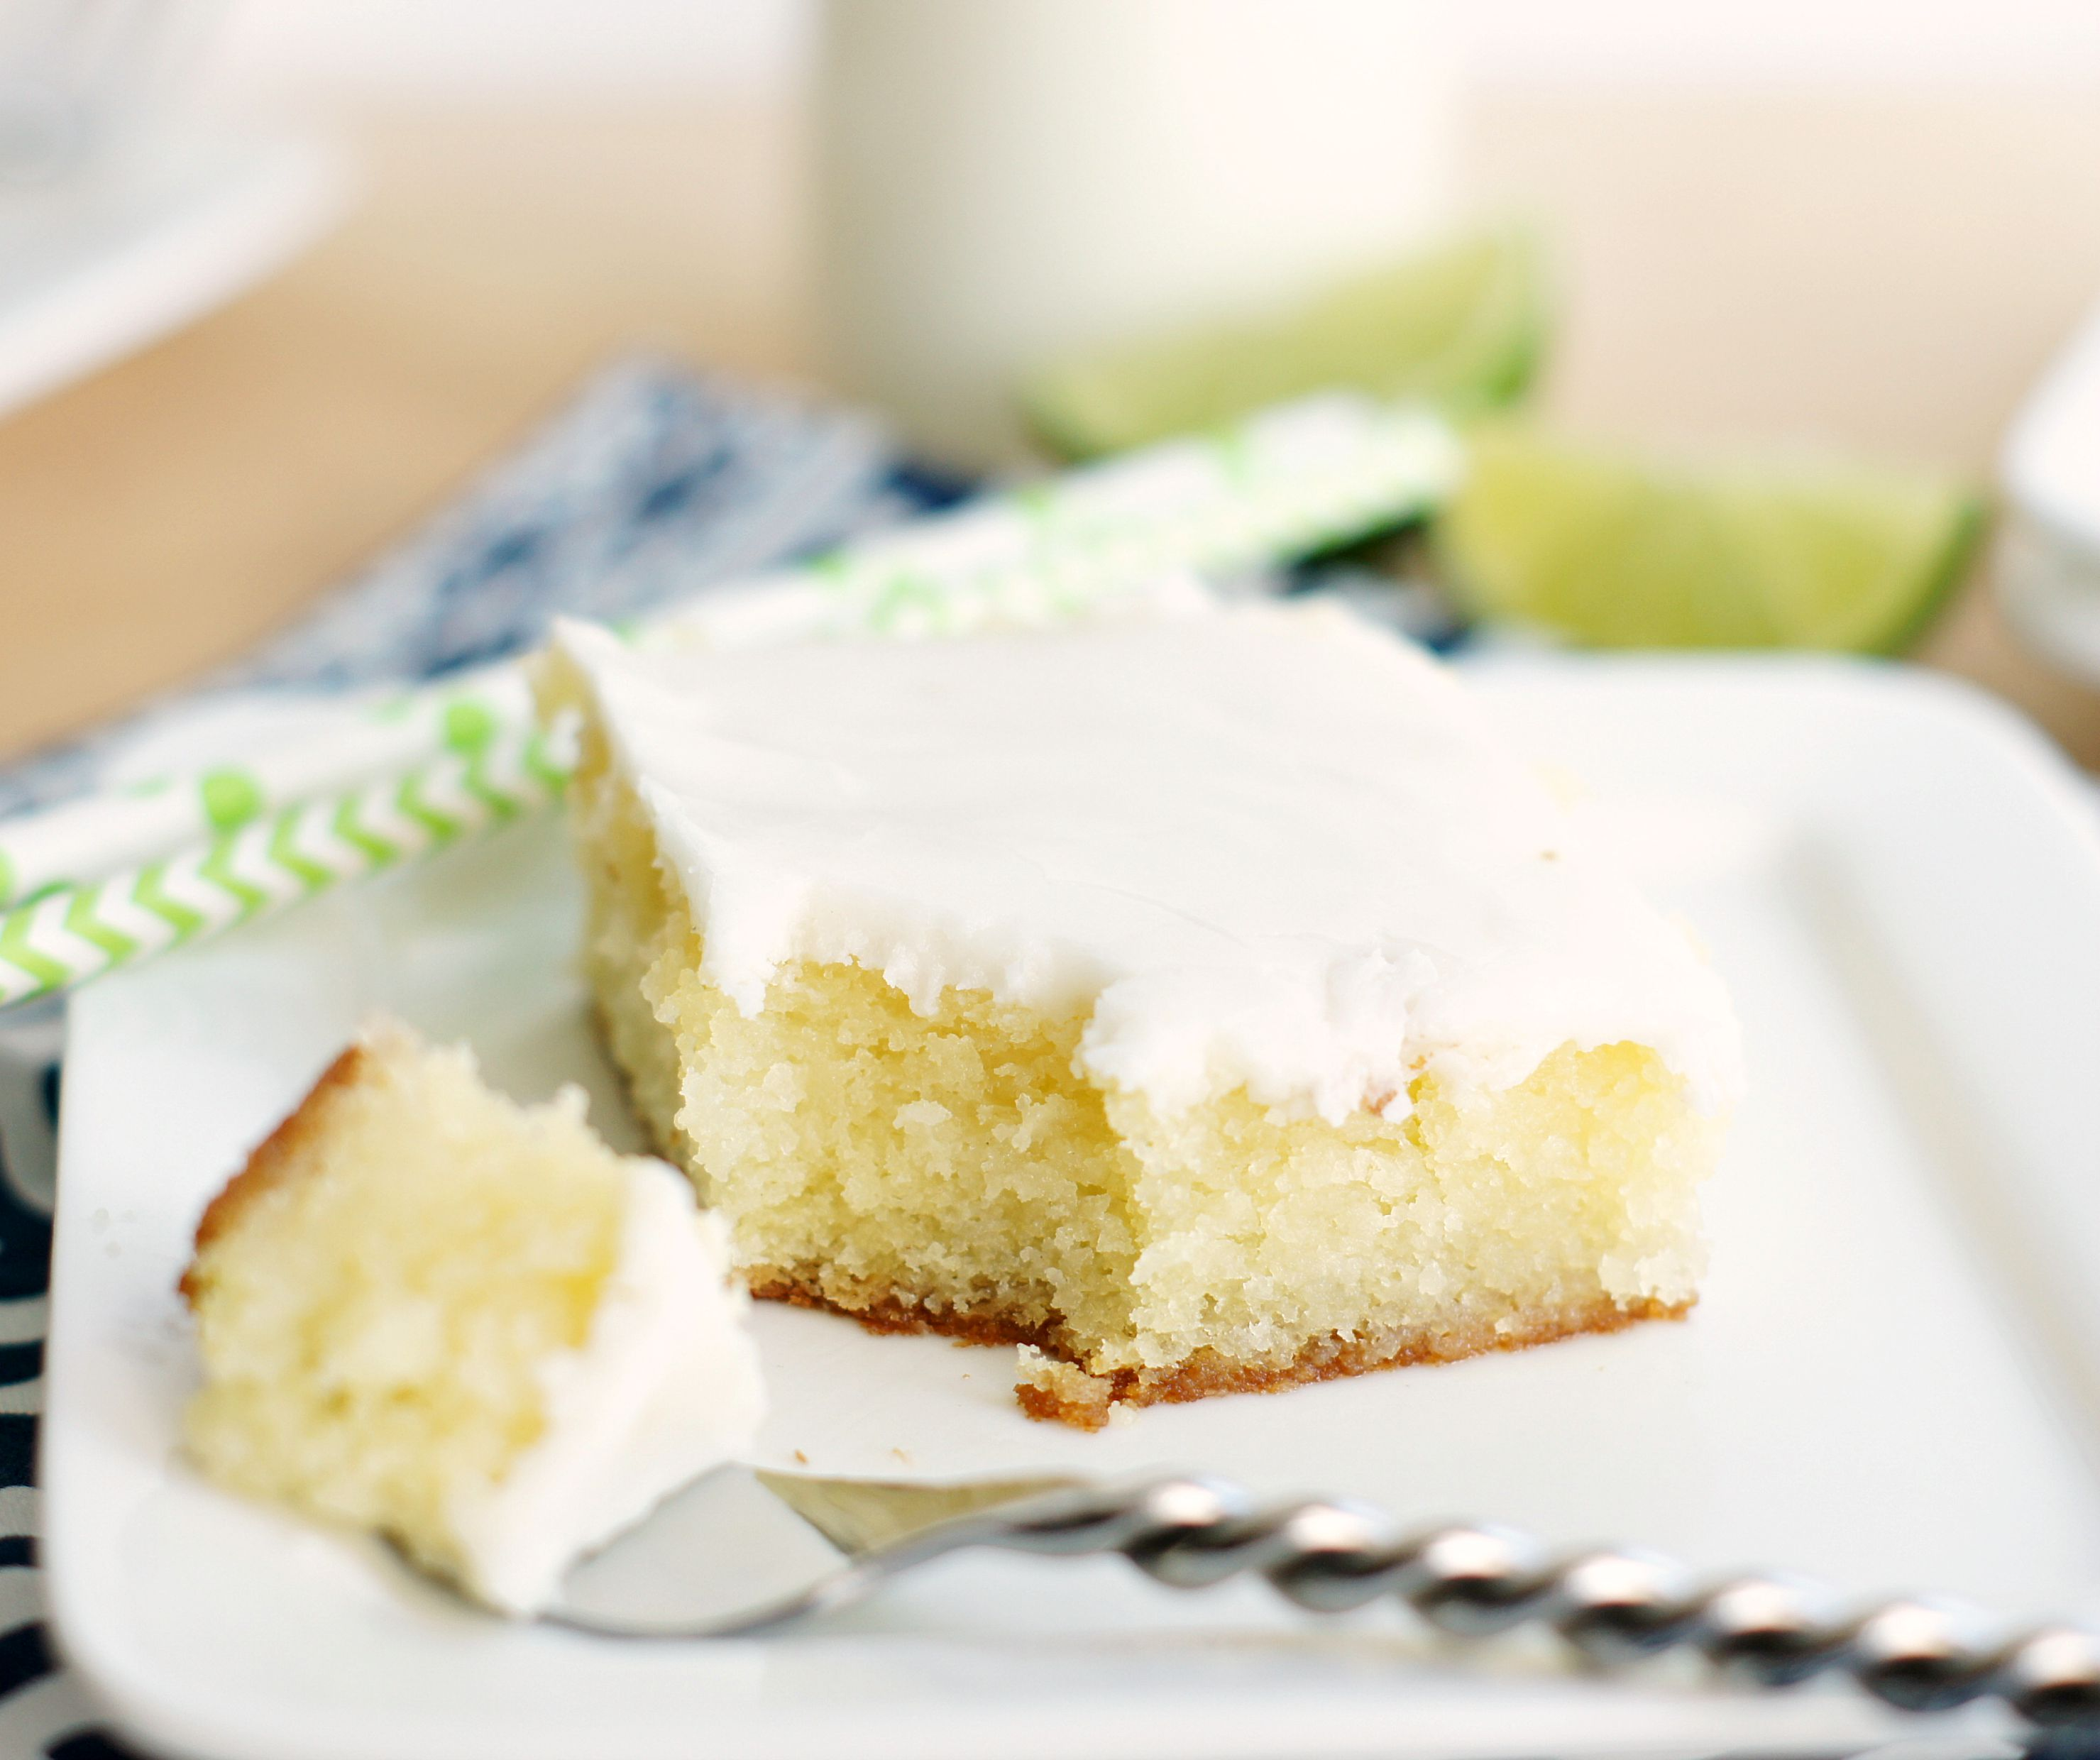 Piece of Glaze Lime Cake with a bite on a fork